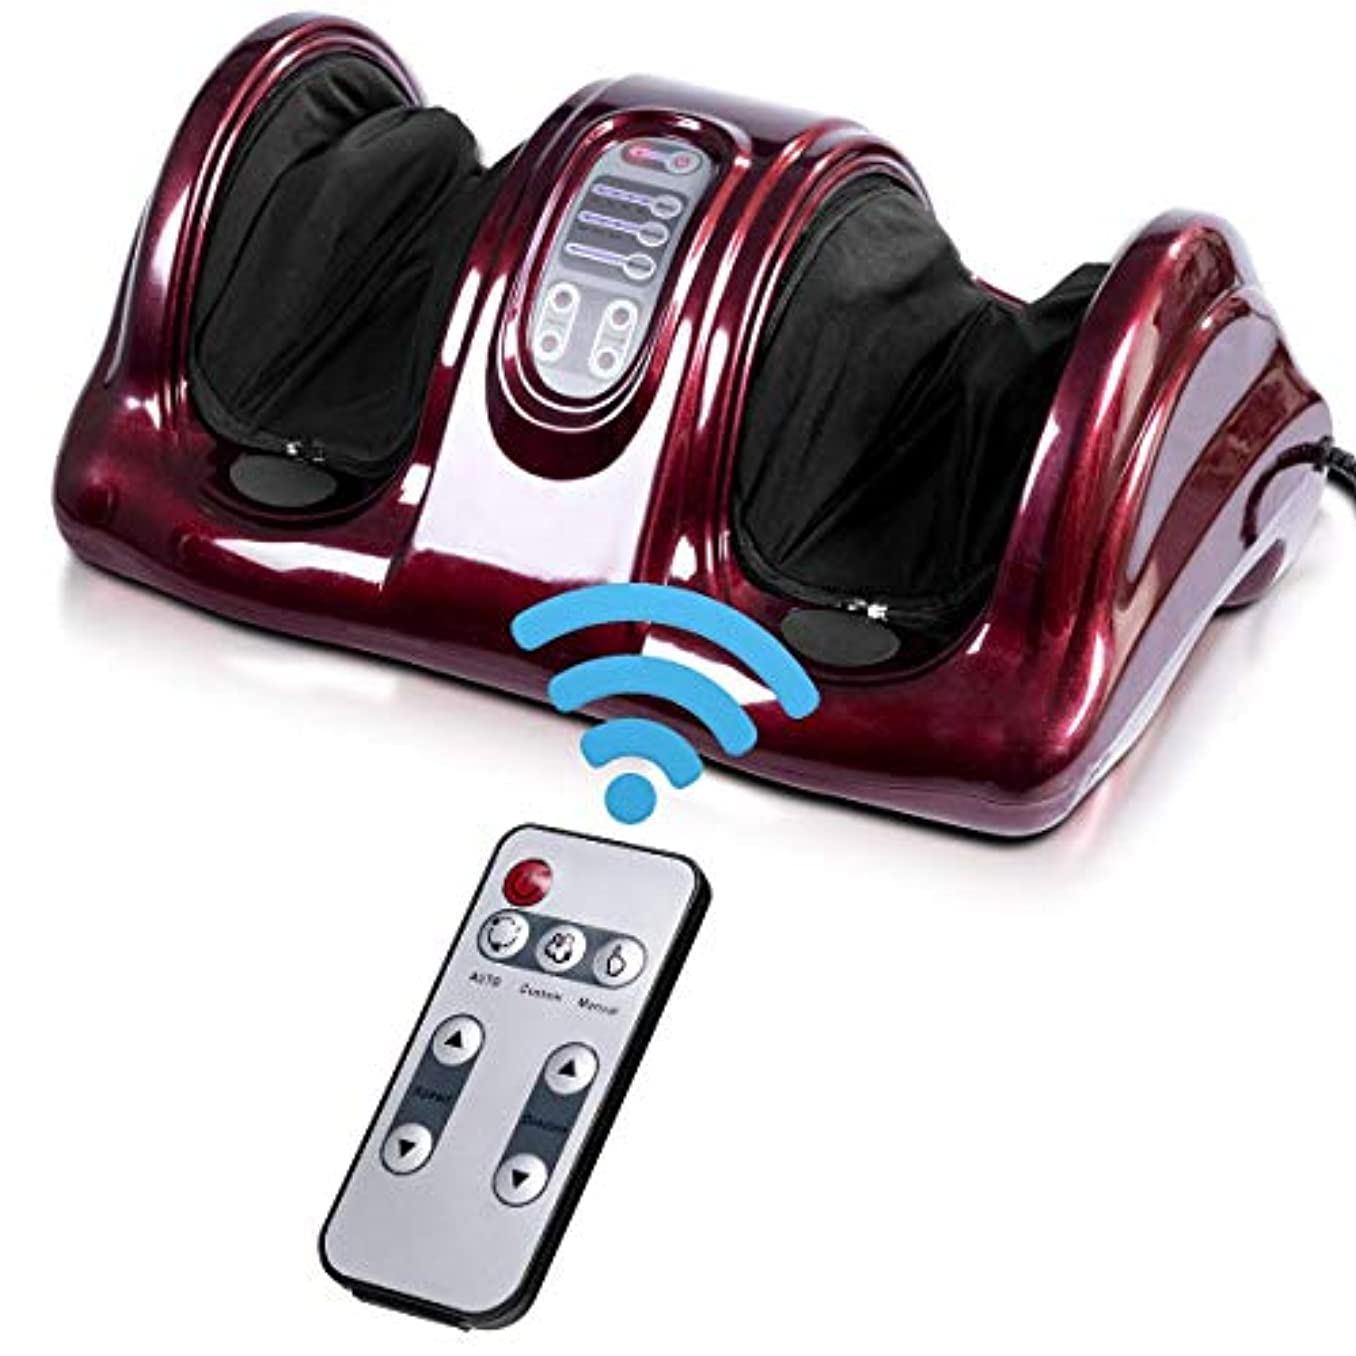 概念安全なセレナ[Giantex][Giantex Foot Massager Machine Massage for Feet, Chronic Nerve Pain Therapy Spa Gift Deep Kneading Rolling Massage for Leg Calf Ankle, Electric Shiatsu Foot Massager w/ Remote, Burgundy](Parallel Imported Goods) (Burgundy)